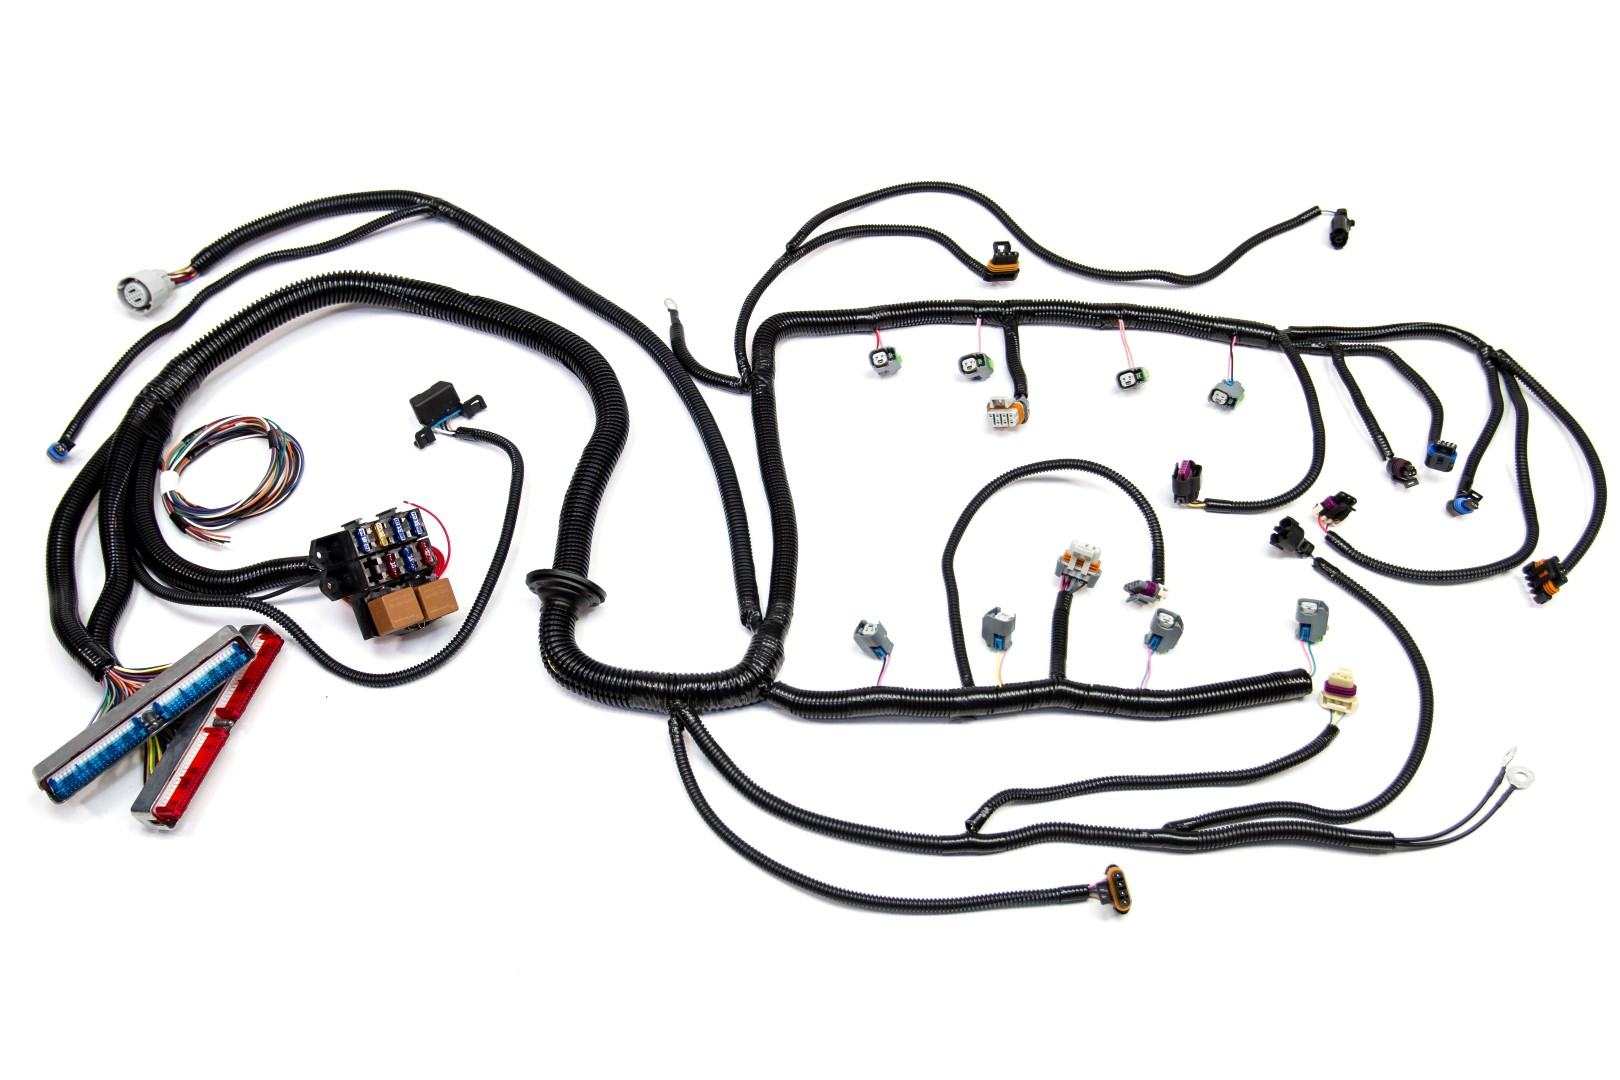 06 13 Gen Iv Ls2 Ls3 W T56 Tr6060 Standalone Wiring Harness Dbc Diagram Coil To Hei Distributor Free Download 298d78da01ee1401459512eab8051600 0389233f99bf6f01459512abc2051600 1f212c701b3ecc01459512d26d051600